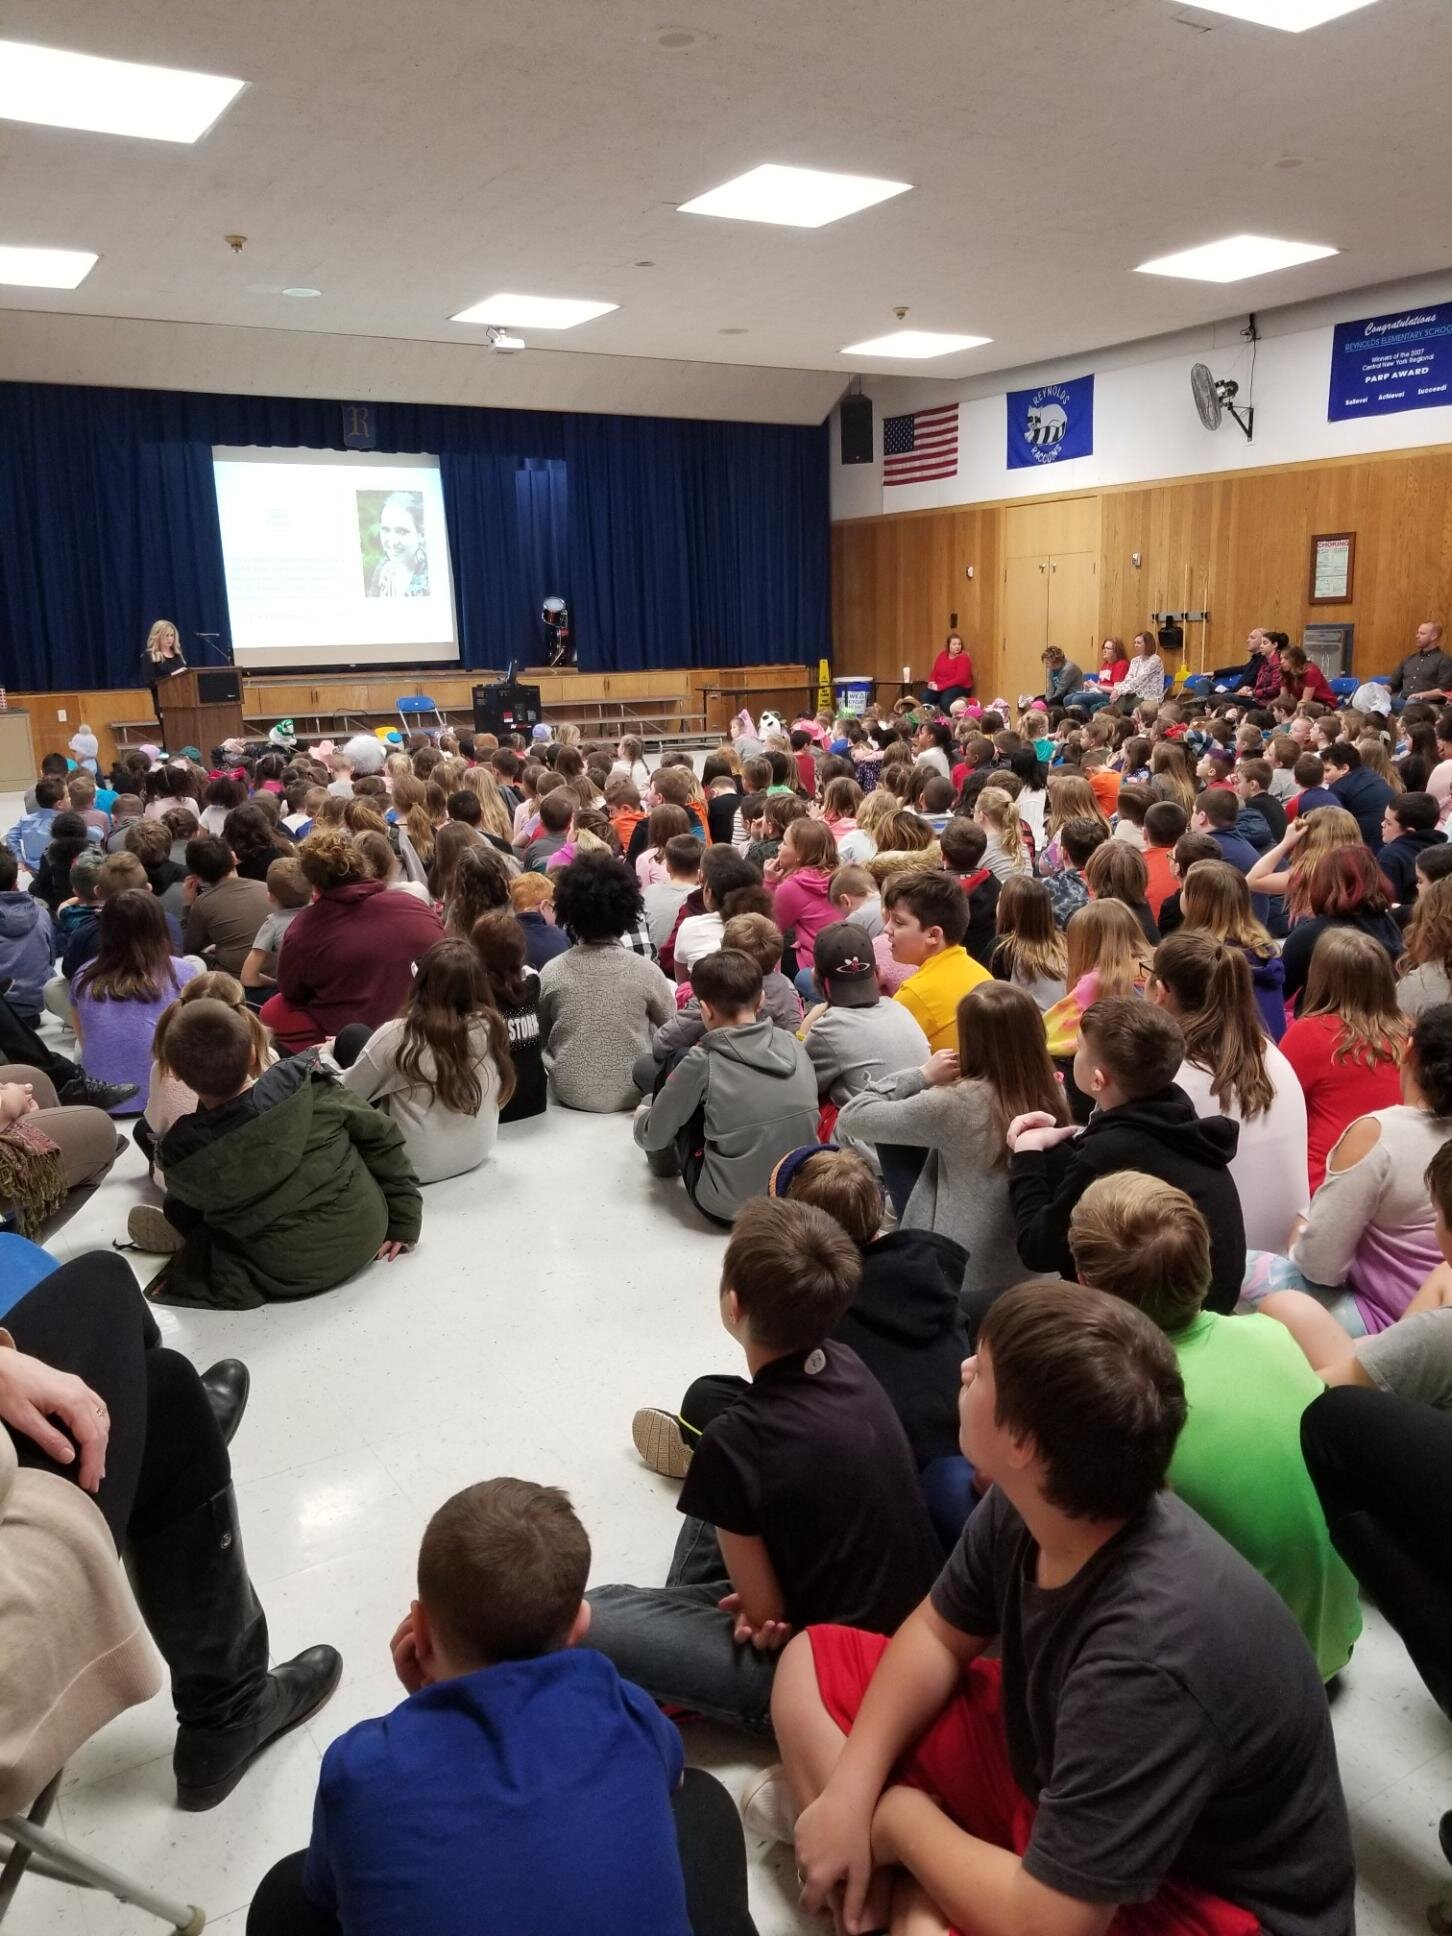 "Presentations - Audience Size: Assembly or classroom45 minutesInspiration StationCory explains her story's path to publication, where ideas come from, where to find inspiration when stuck, and how anyone can write fiction and have fun doing it.Eat That BookThe perfect addition to your Read Across America or National Poetry Month celebrations. This presentation explores the different kinds of books we read, encourages students to ""taste"" (like Alastair from The Simple Art of Flying) a wide selection, and highlights the journey and importance of reading.(Educators might find that adding a classroom ""Book Tasting"" to the day's events to be a helpful and fun way to apply this message. Includes a downloadable ""Book Tasting"" guide and worksheet.)Super Seeds and Peachy PitsUsing themes from The Simple Art of Flying, and both a scientific and metaphorical exploration into seeds, this presentation takes more of an inspirational approach. Questions like: What kind of seeds are you planting?and, What does it take to grow something from seed to fruit?are posed to affirm students' inherent value, challenge their ways of thinking about everyday choices, see ""the pits"" for their potential, and crown kindness king of the forest.(Includes a cherry pit reminder for every attendee.)"